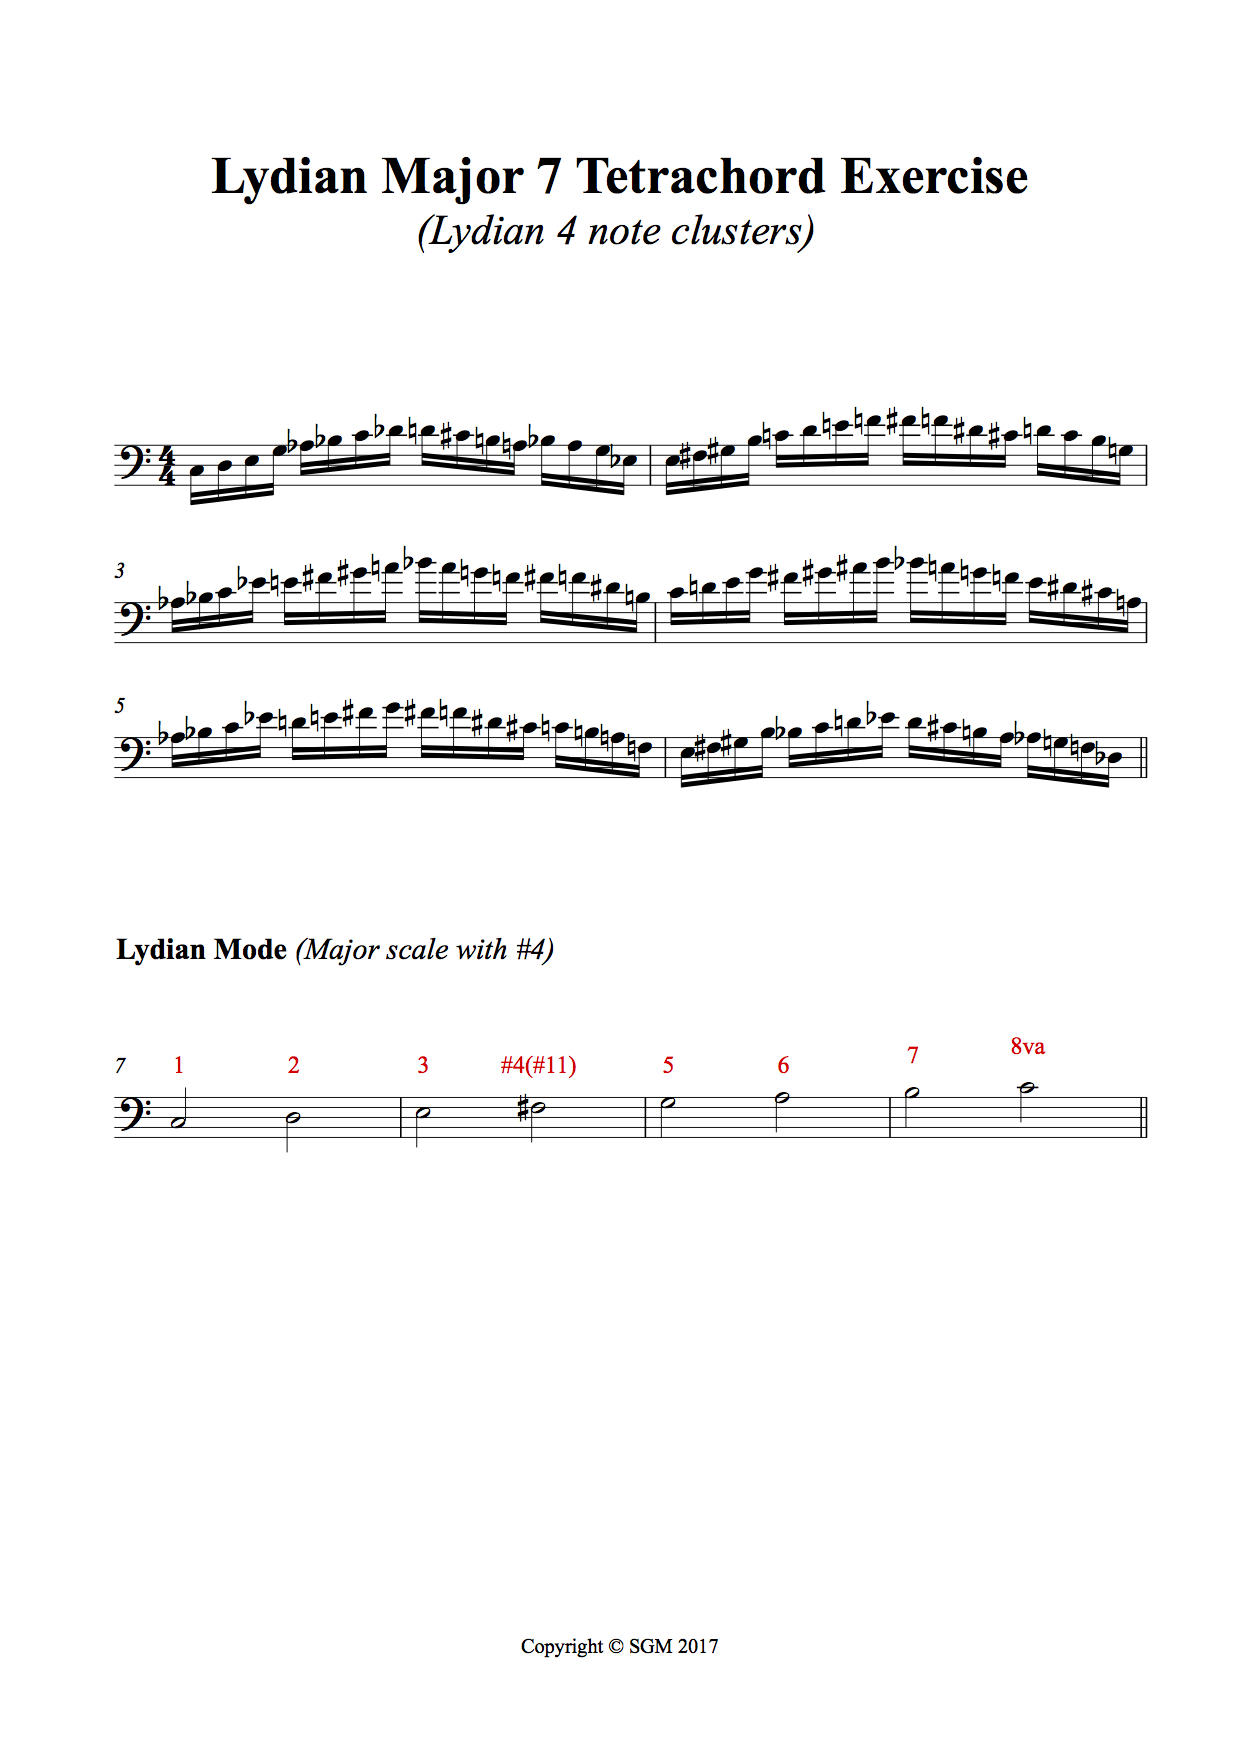 Lydian Exercise - Here is a very useful exercise for fingerboard knowledge using the Lydian Mode. Here the mode is split into two 4 note clusters called 'Tetrachords'. The pattern repeats every Major 3rd interval as you move chromatically up the neck. Play this exercise in all keys ascending and descending.